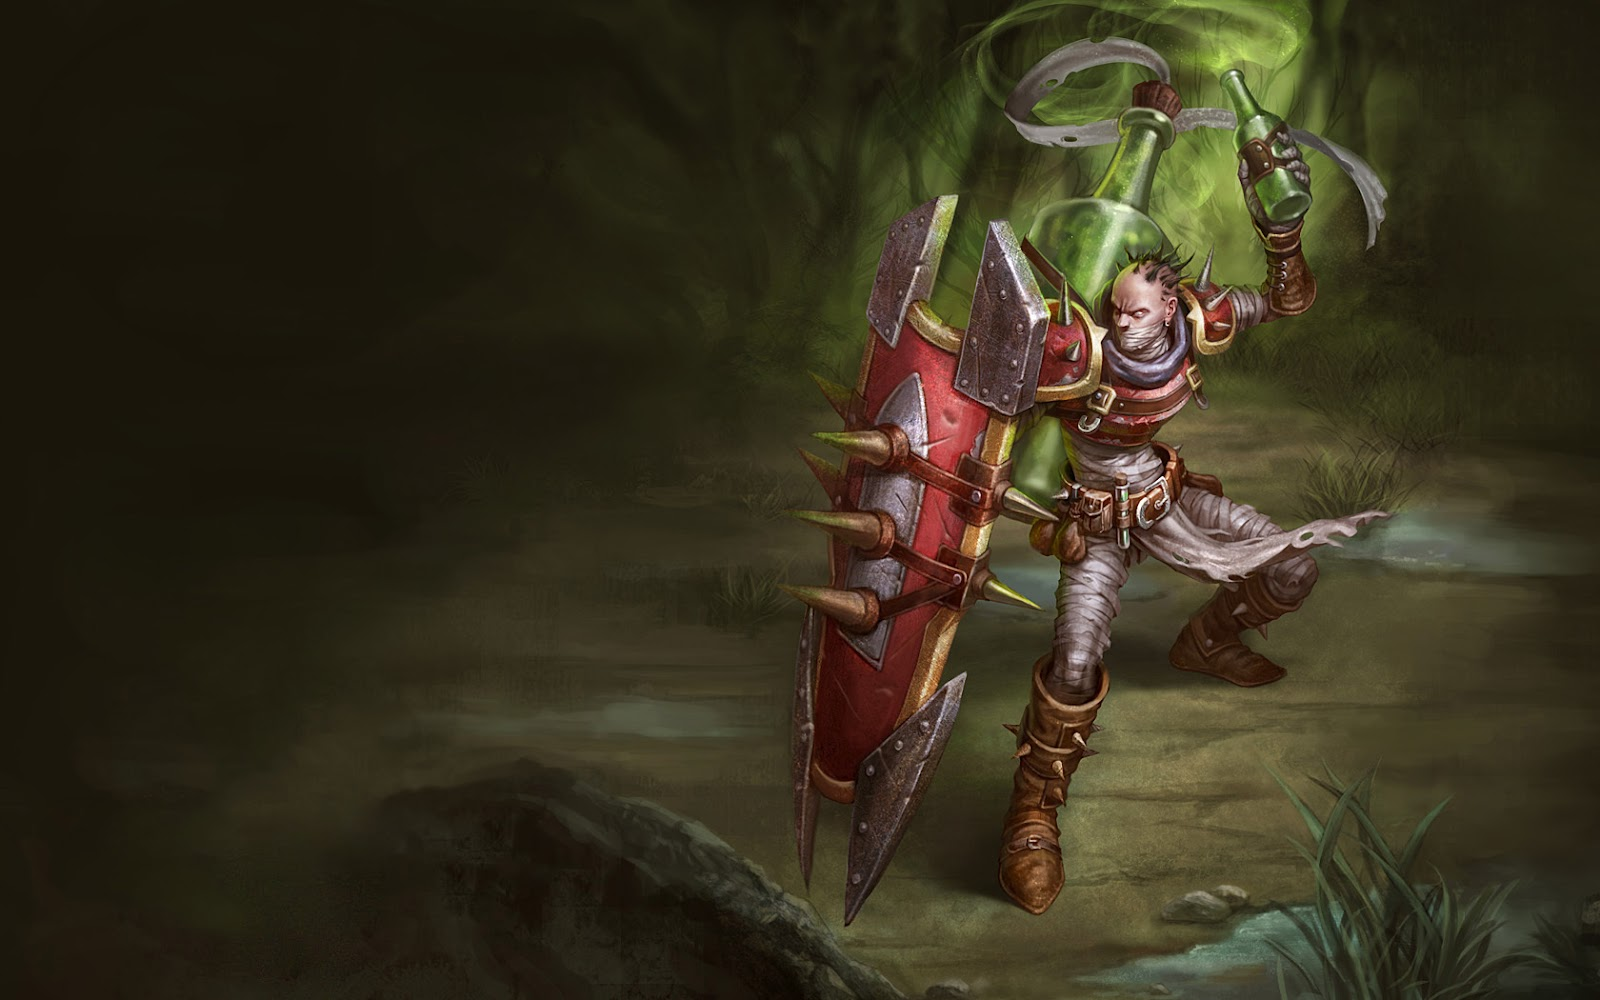 http://3.bp.blogspot.com/-fOkjoYQagHA/UBdklLxL1XI/AAAAAAAAI44/SJoZzylYY9A/s1600/6787_league_of_legends_hd_wallpapers.jpg